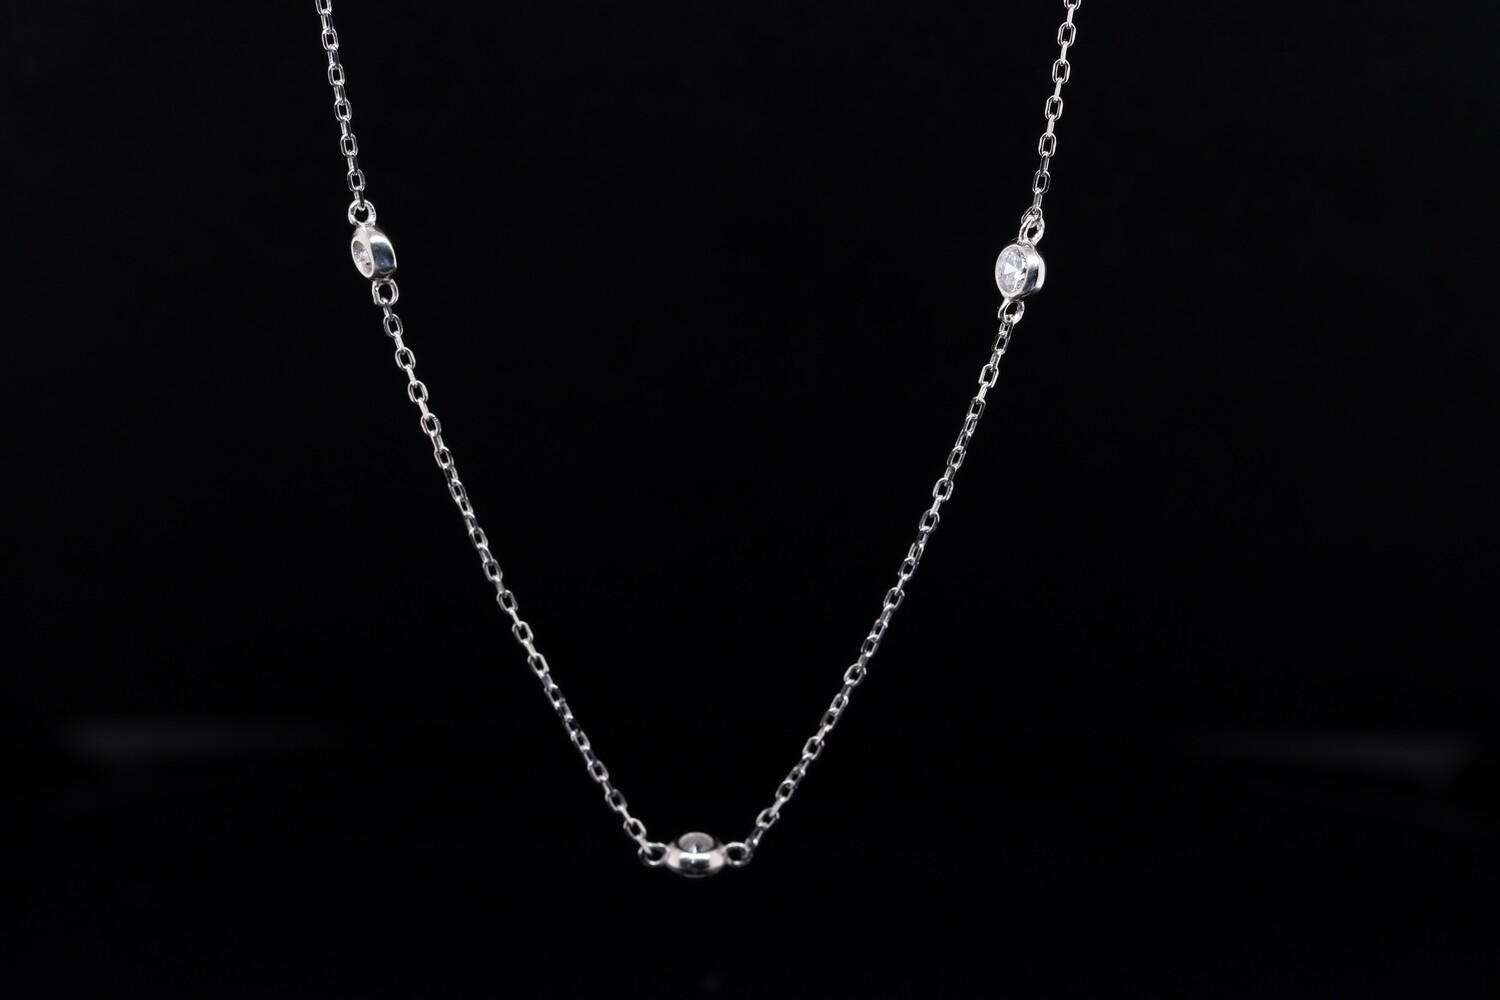 Solitaire White Silver Long Chain